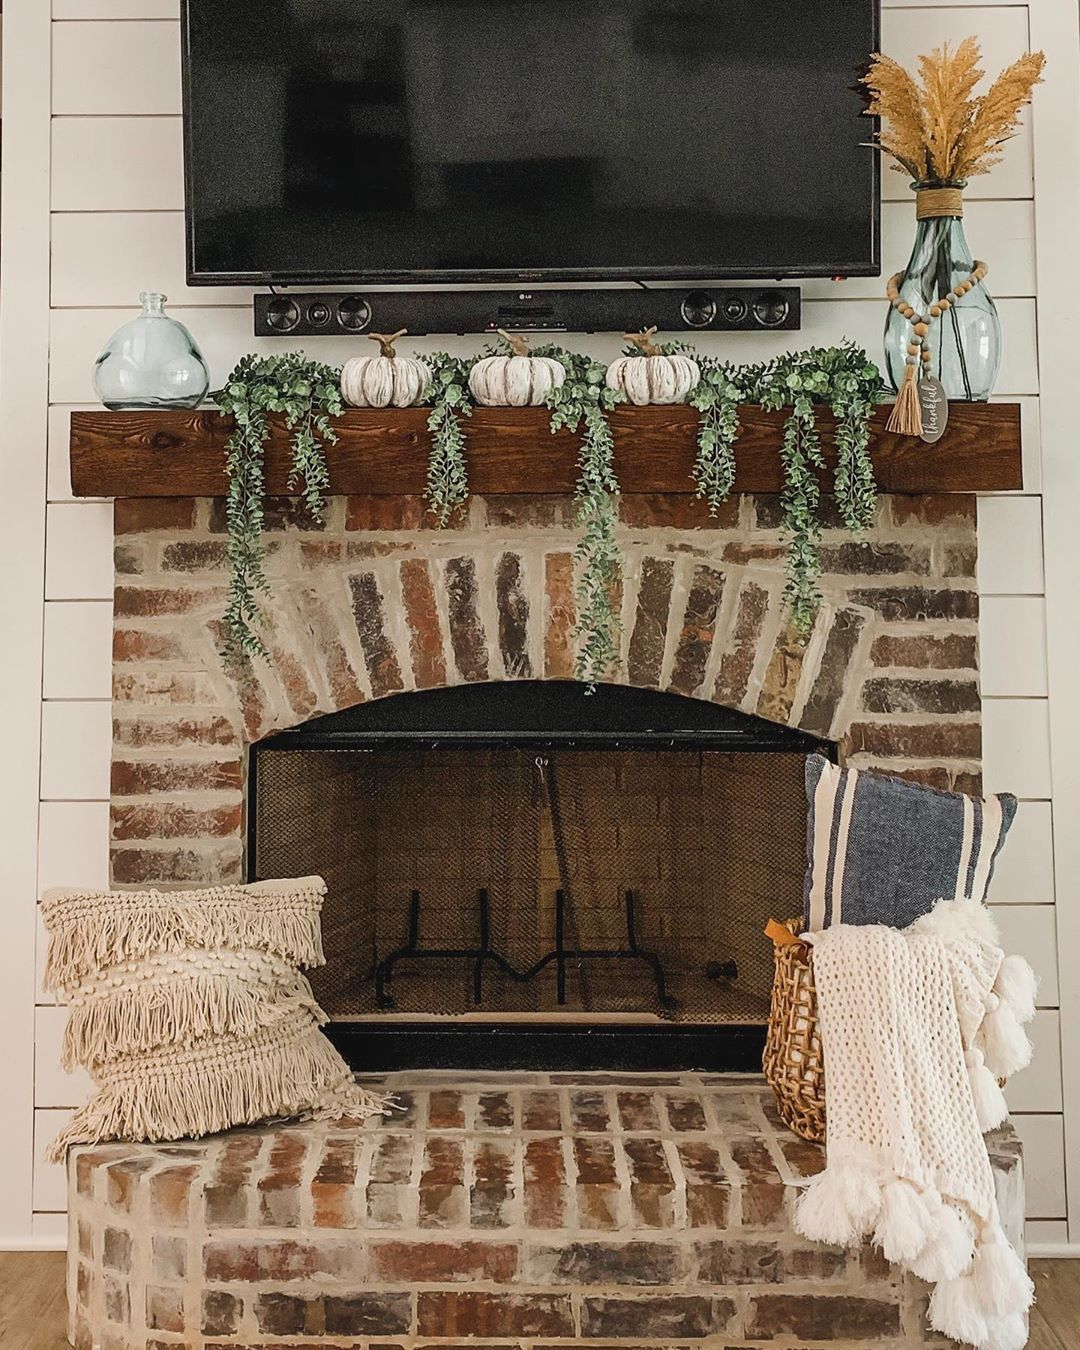 Beautiful Simple Brick Fireplace For Fall @casadethompson